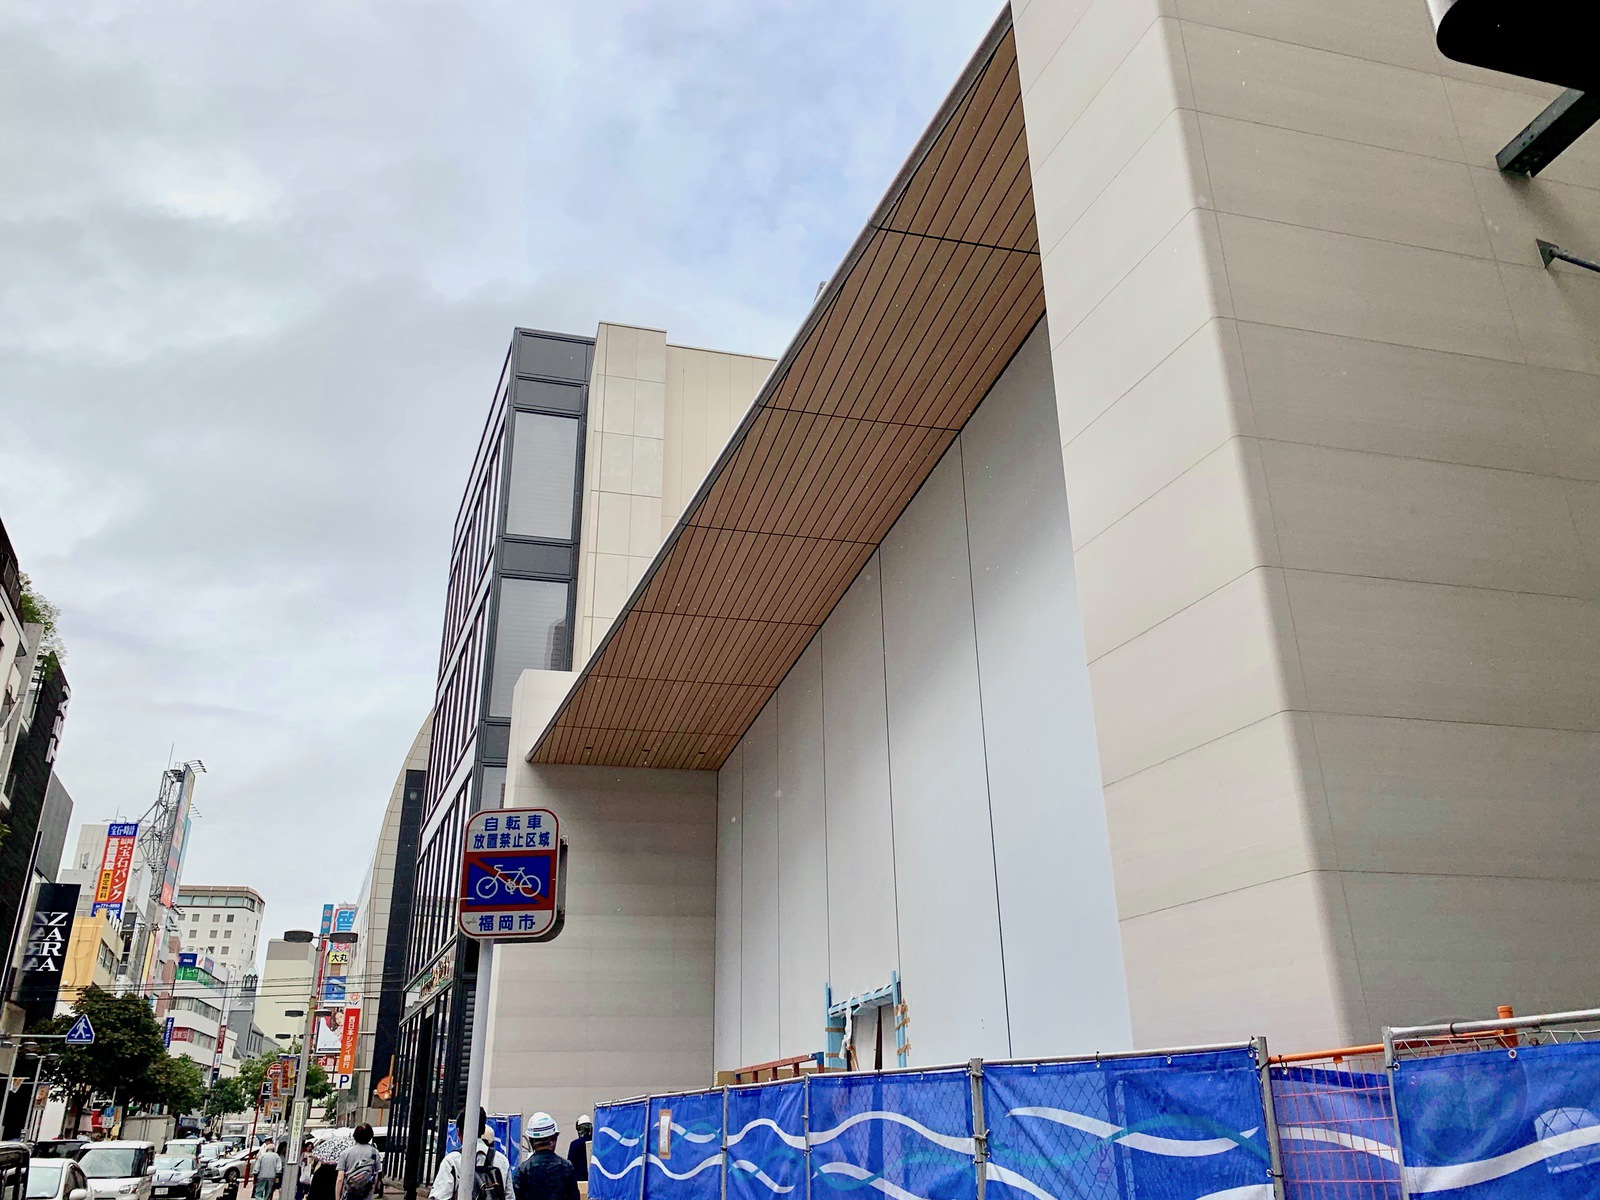 Apple-Fukuoka-Tenjin-Under-Construction-03.jpg